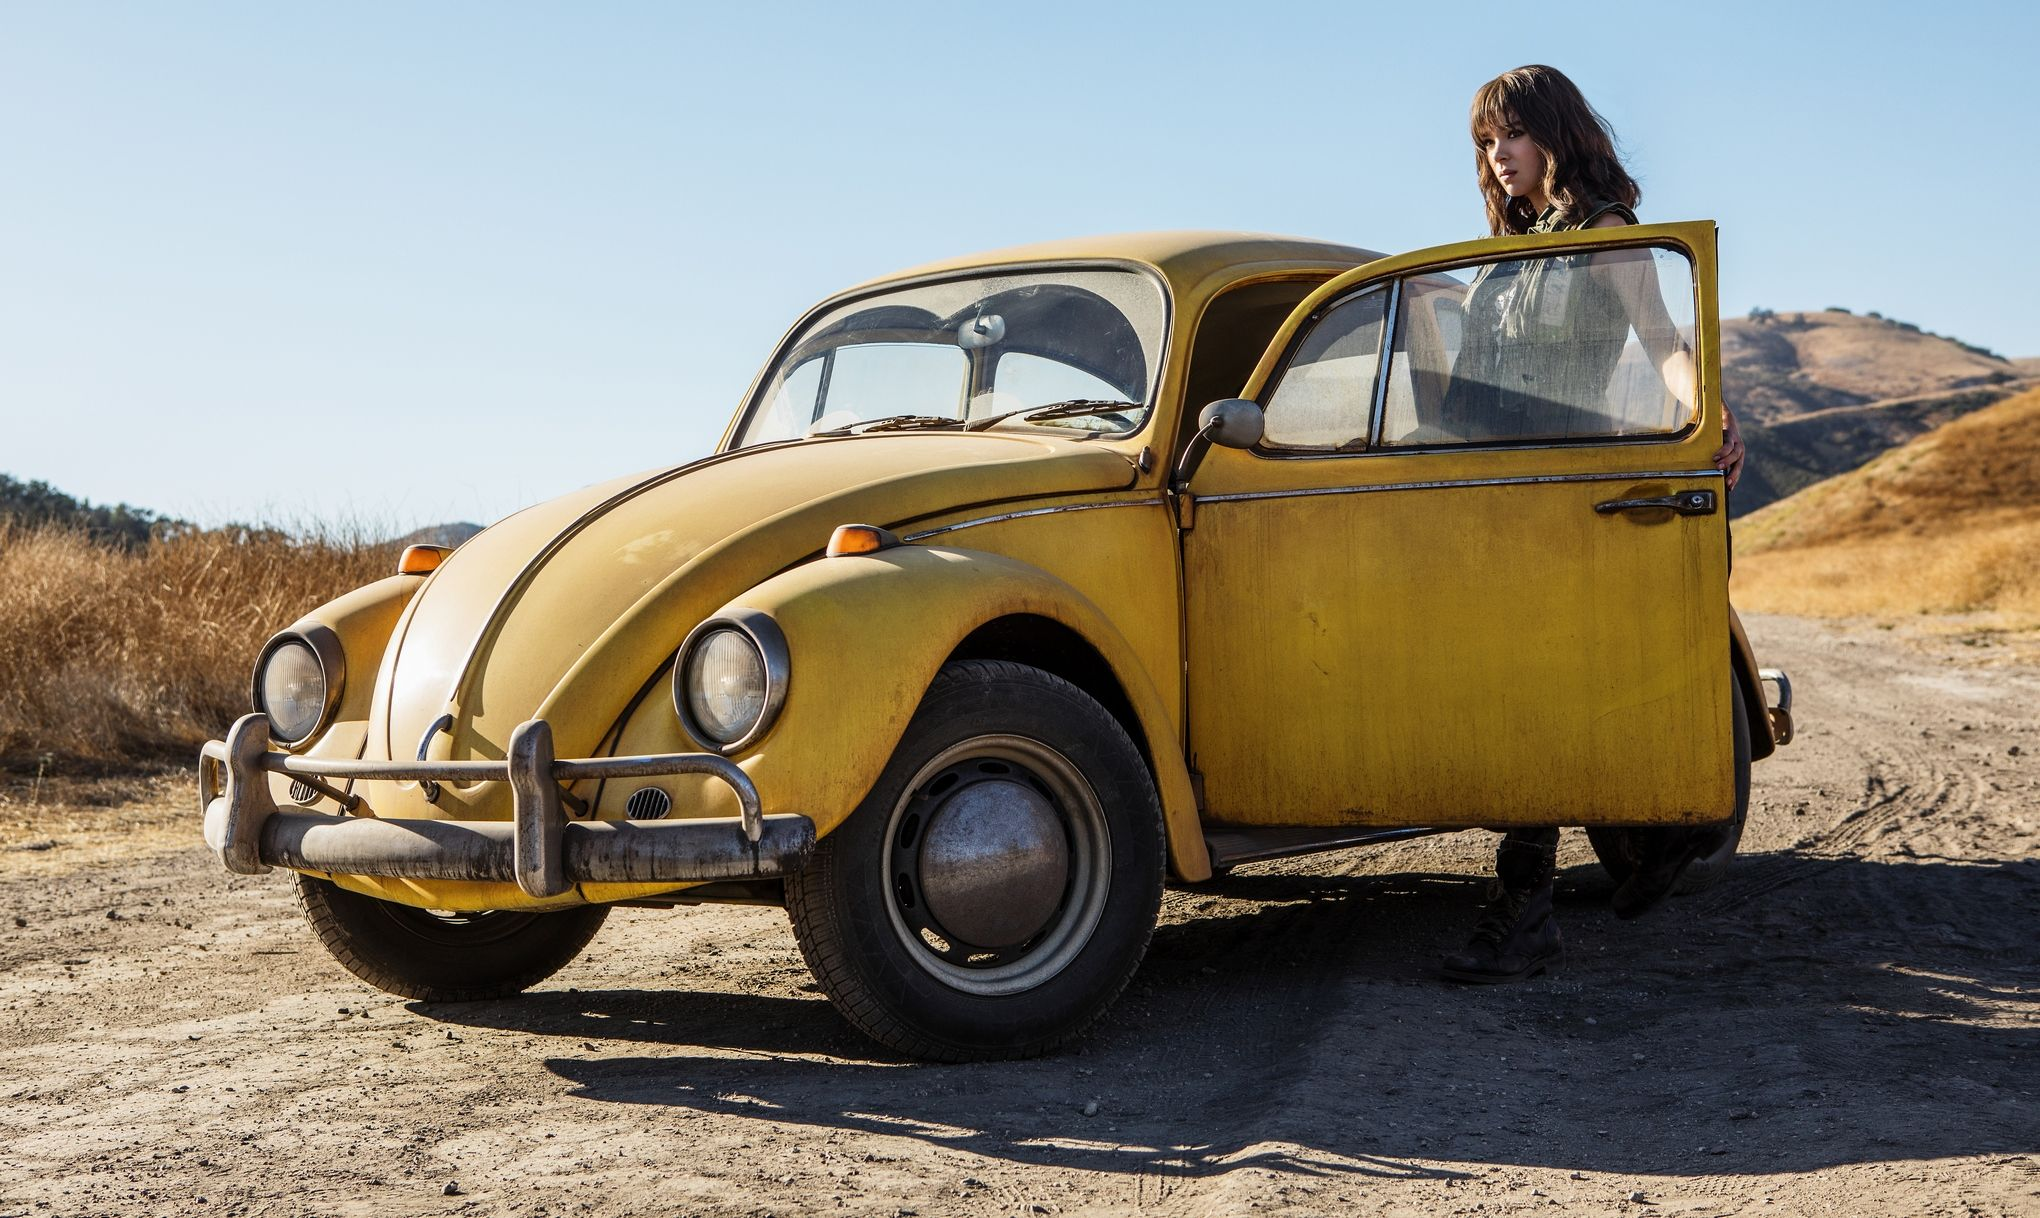 Take A Look At These Two Gnarly Decepticon Muscle Cars From Bumblebee